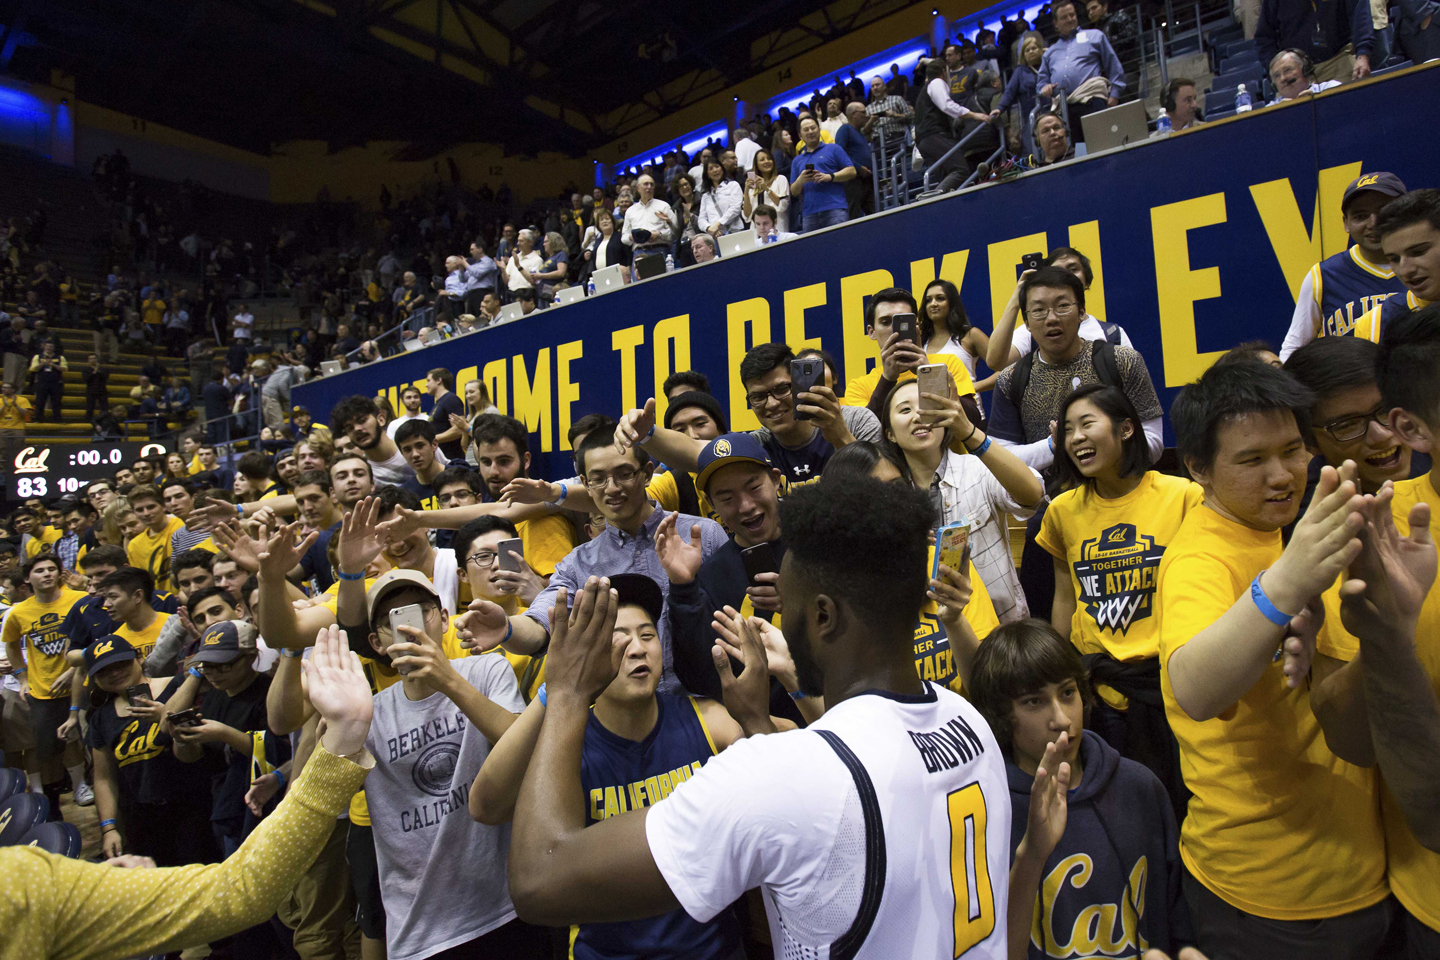 California Golden Bears forward Jaylen Brown (0) celebrates with students after the win at Haas Pavilion. The California Golden Bears defeated the Oregon Ducks 83-63.